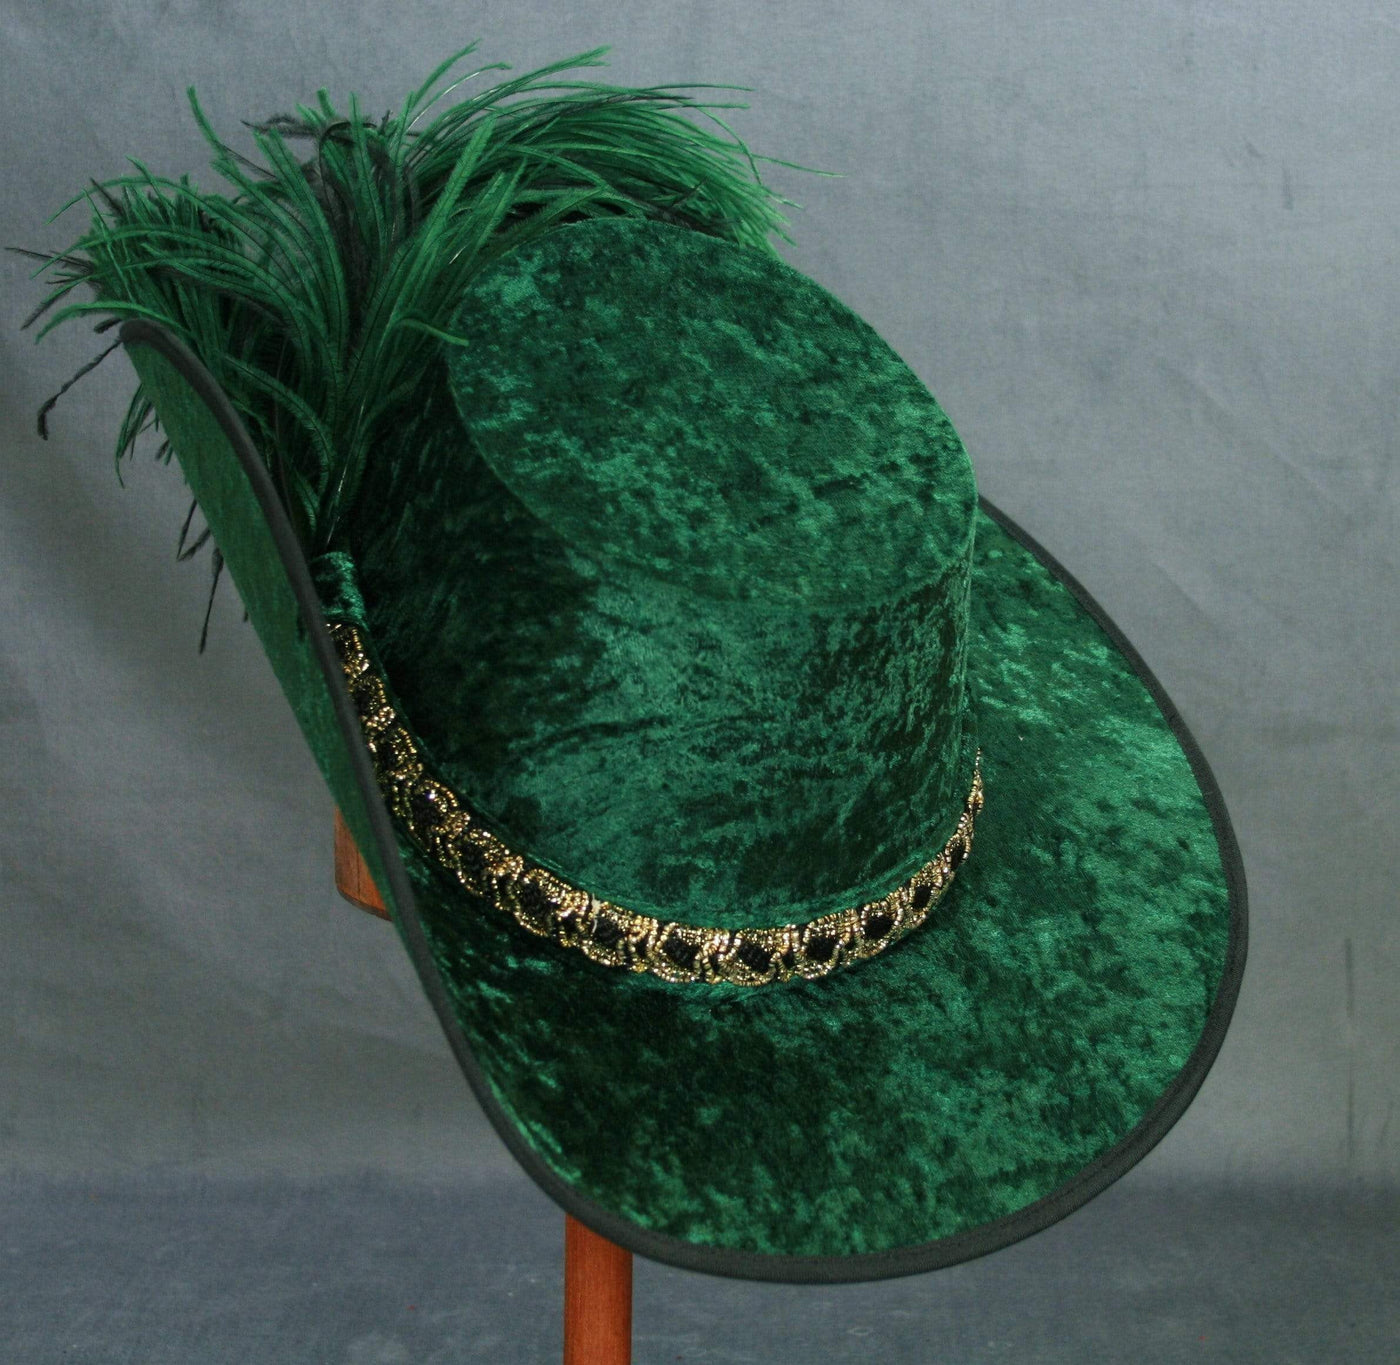 Crushed Velvet Cavalier - Forest Green / Black Gold / Green Feathers - Tall Toad